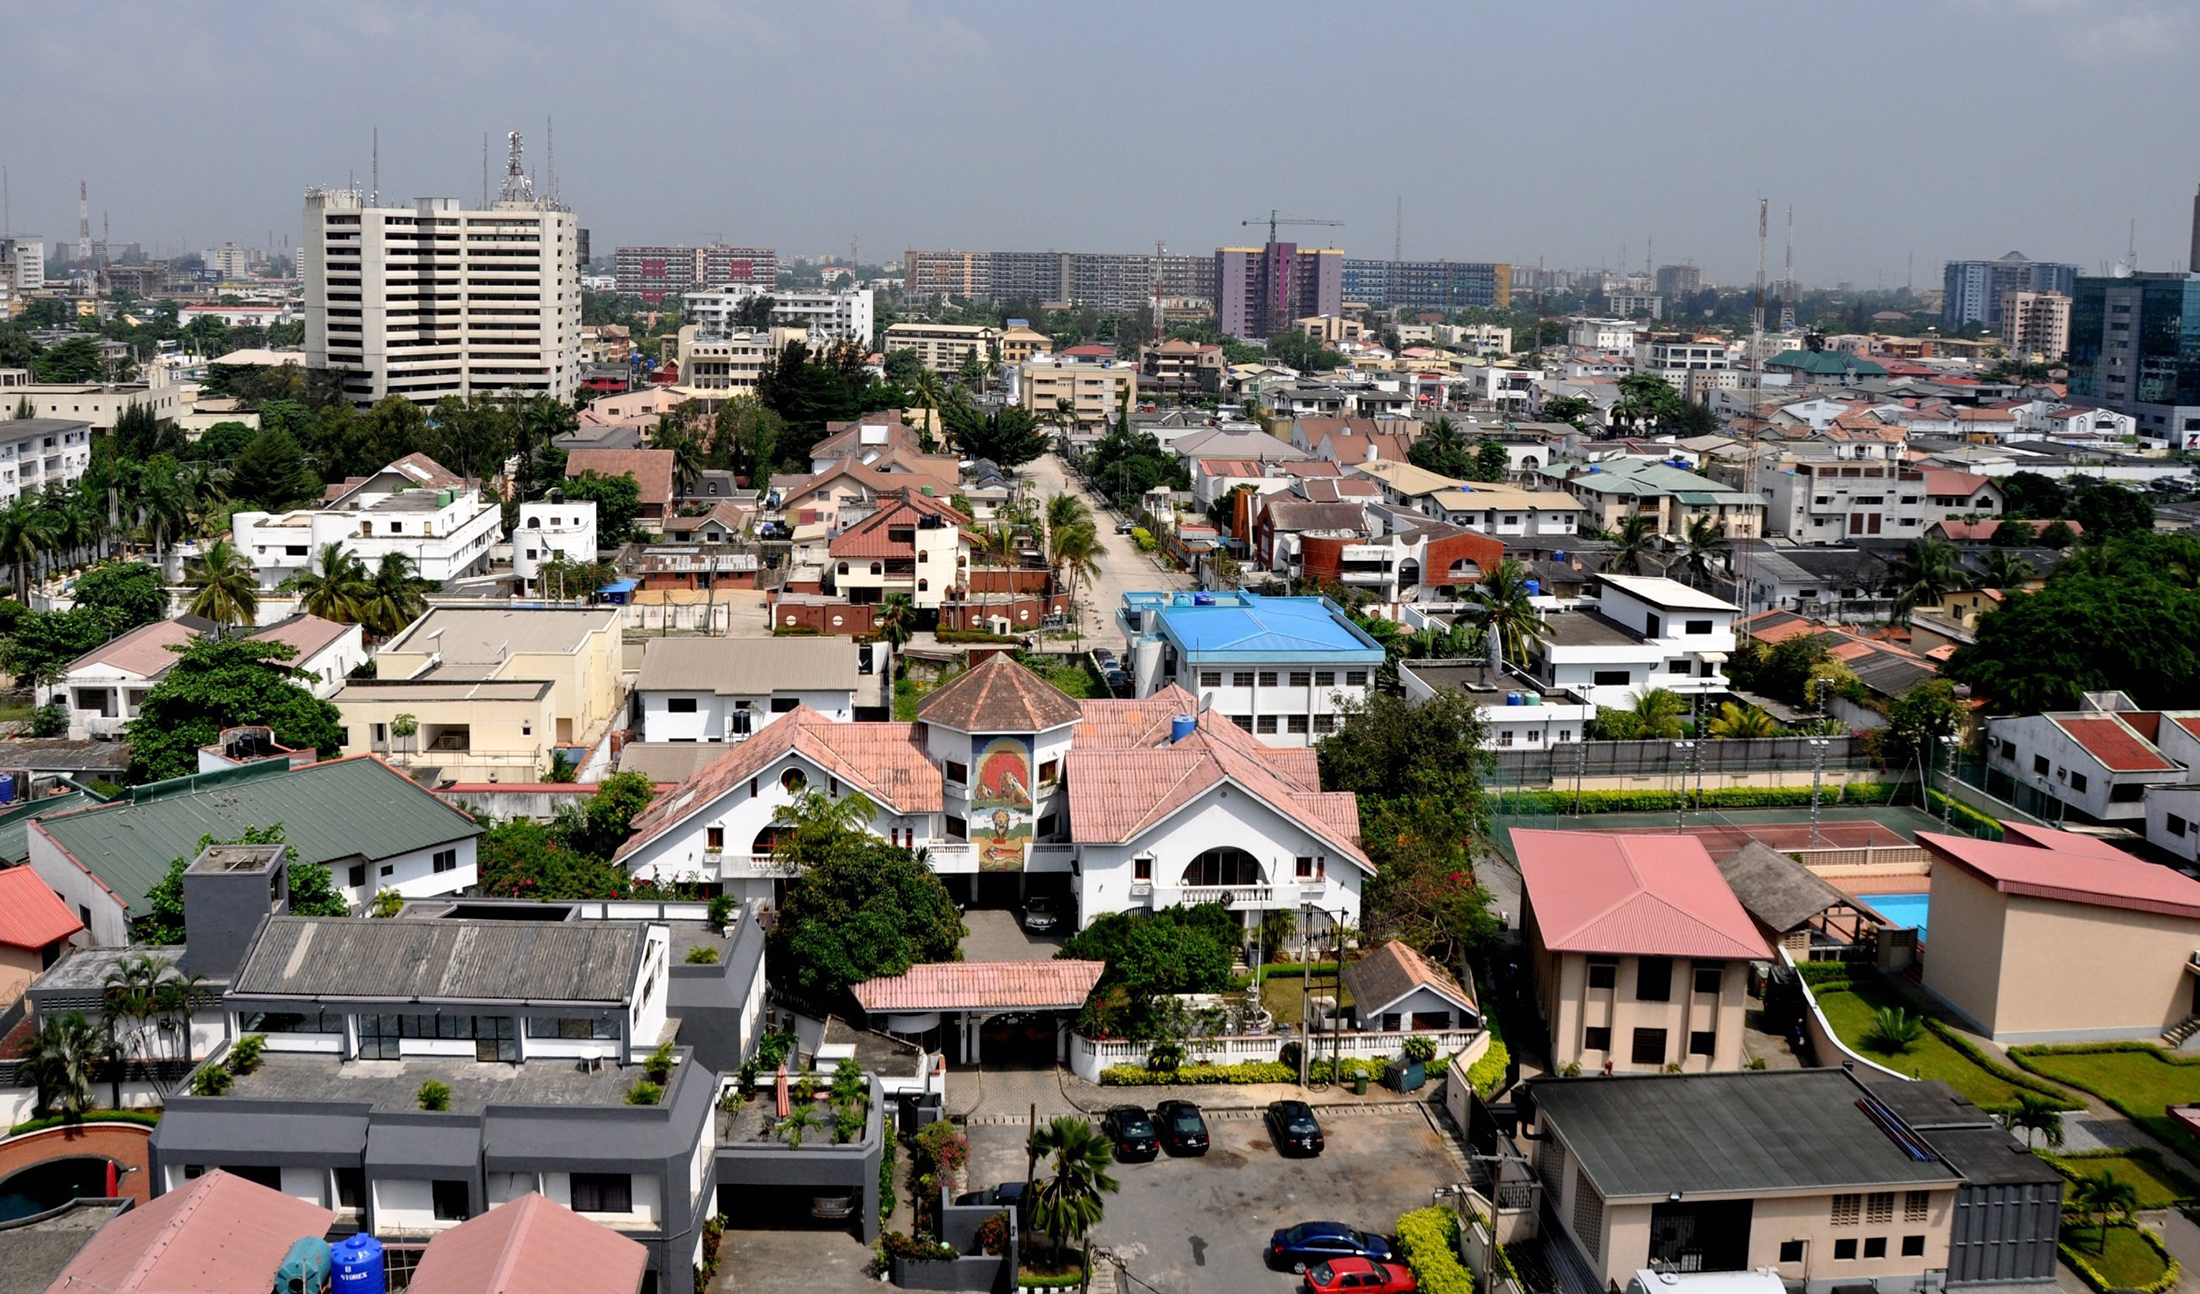 Mortgages in Nigeria are set to grow thanks to President Goodluck Jonathan's government